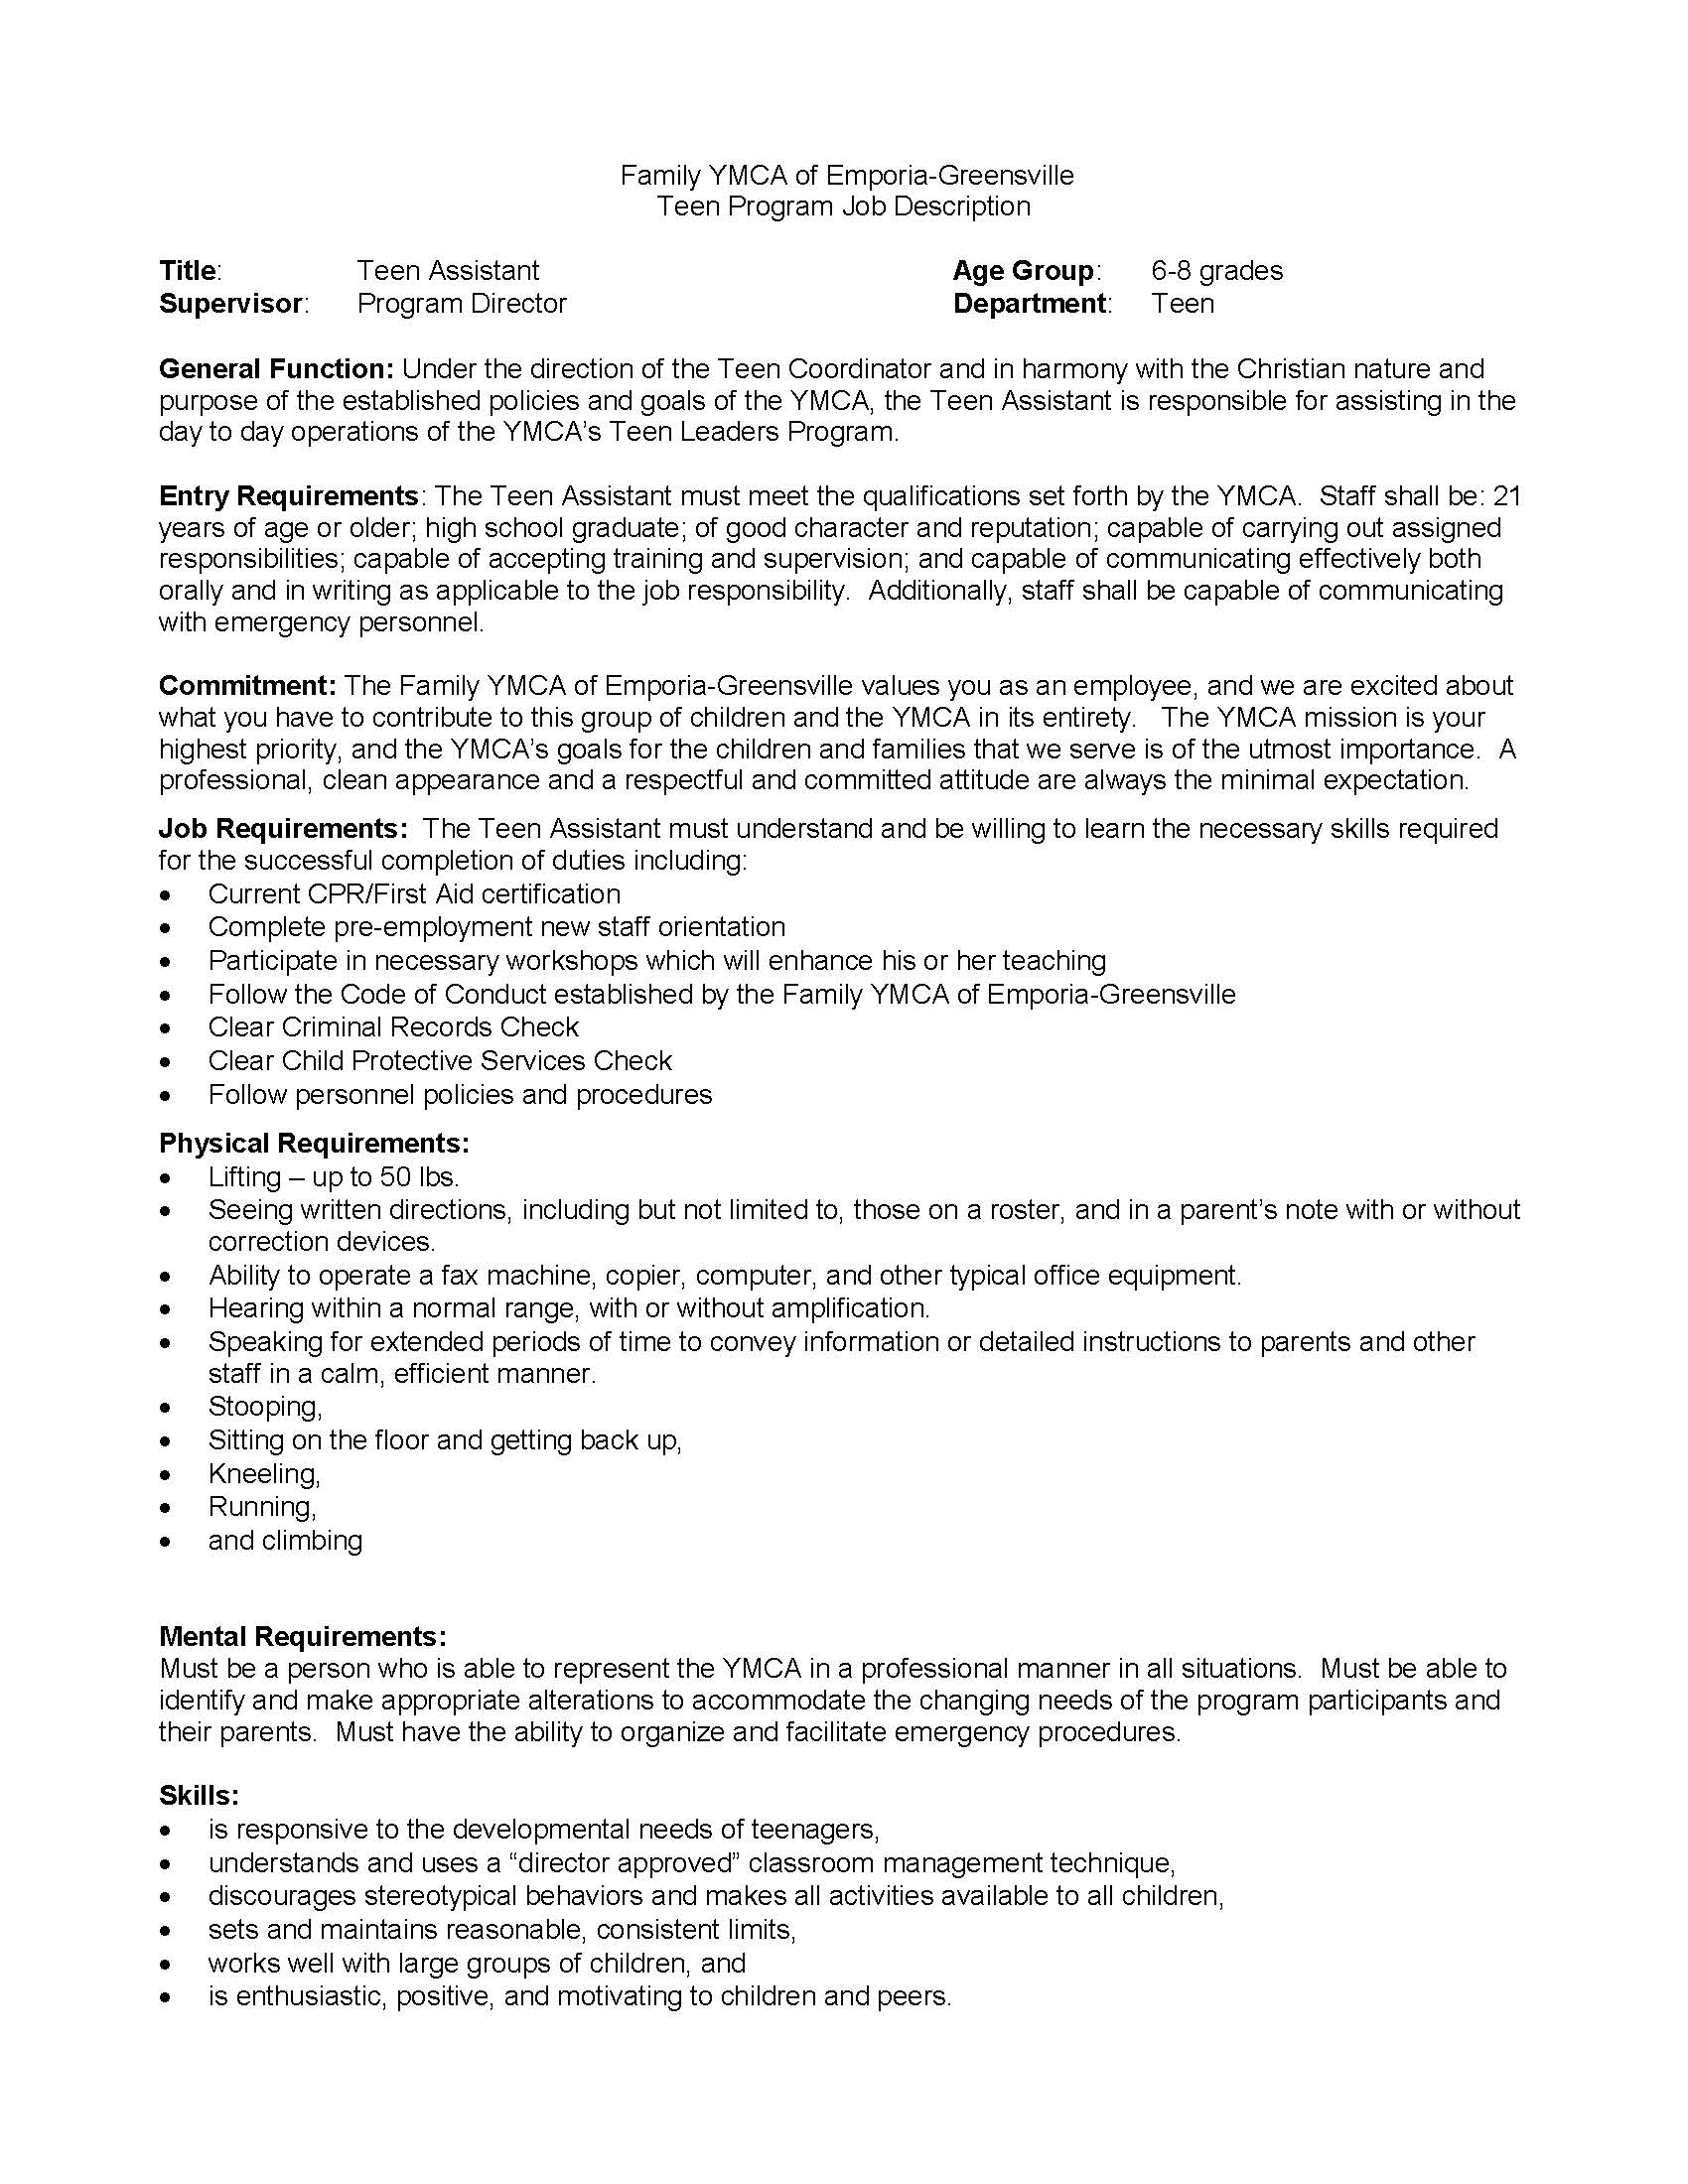 Teen Assistant Job Description updated 10 4 11 Page 1